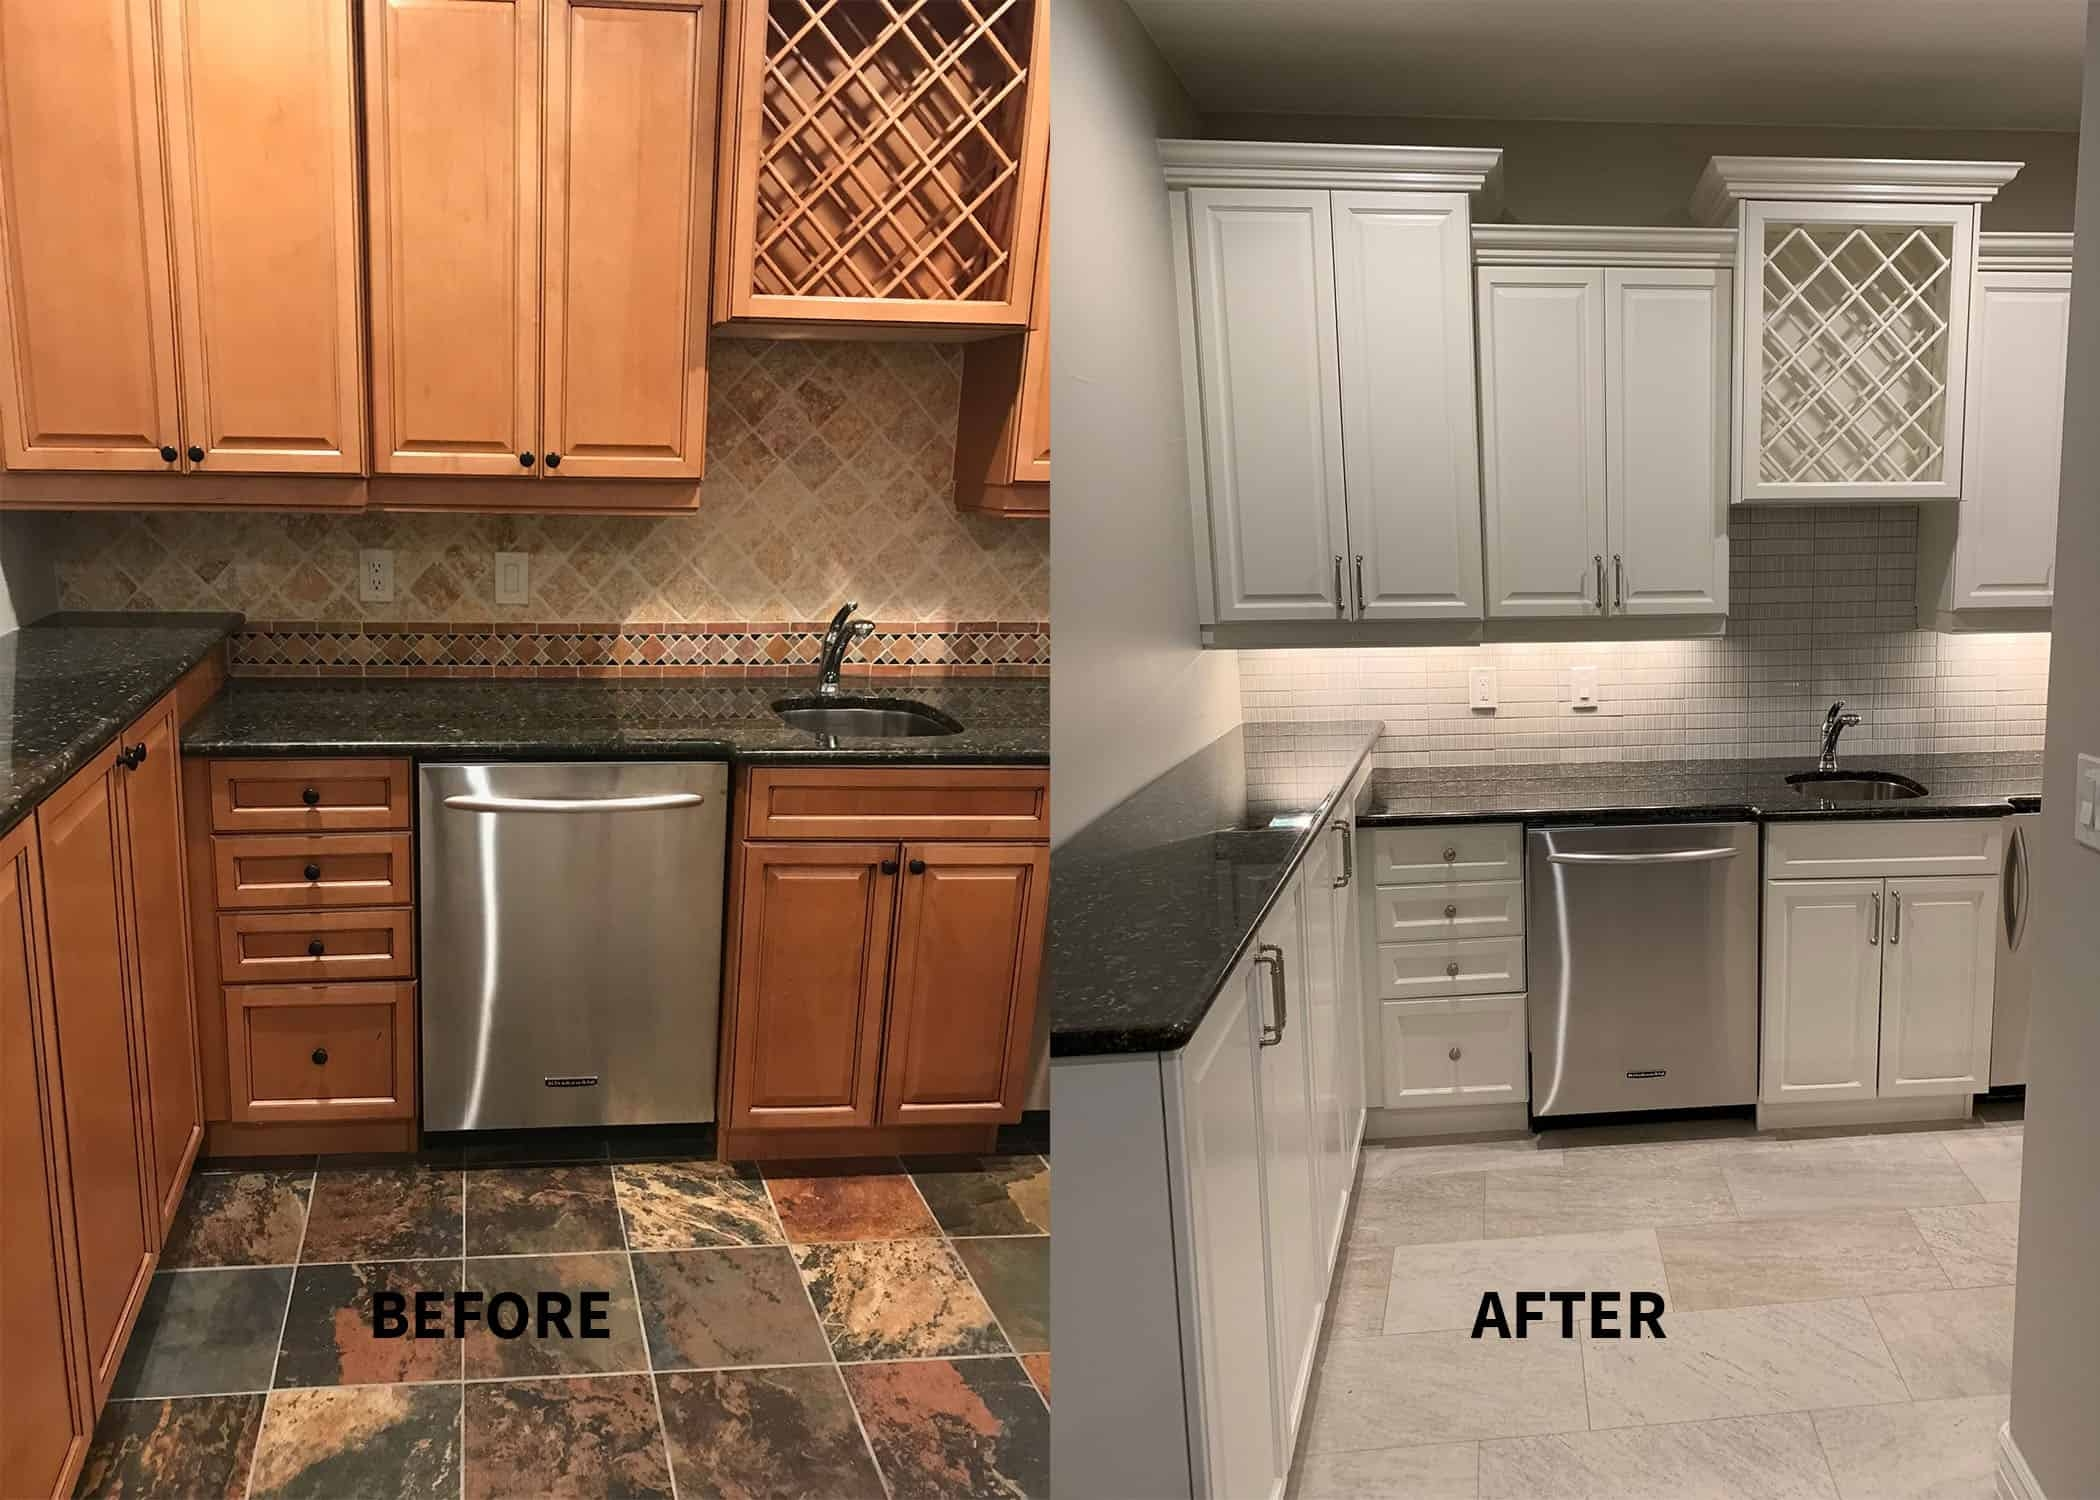 8 Images Staining Kitchen Cabinets Before And After ...